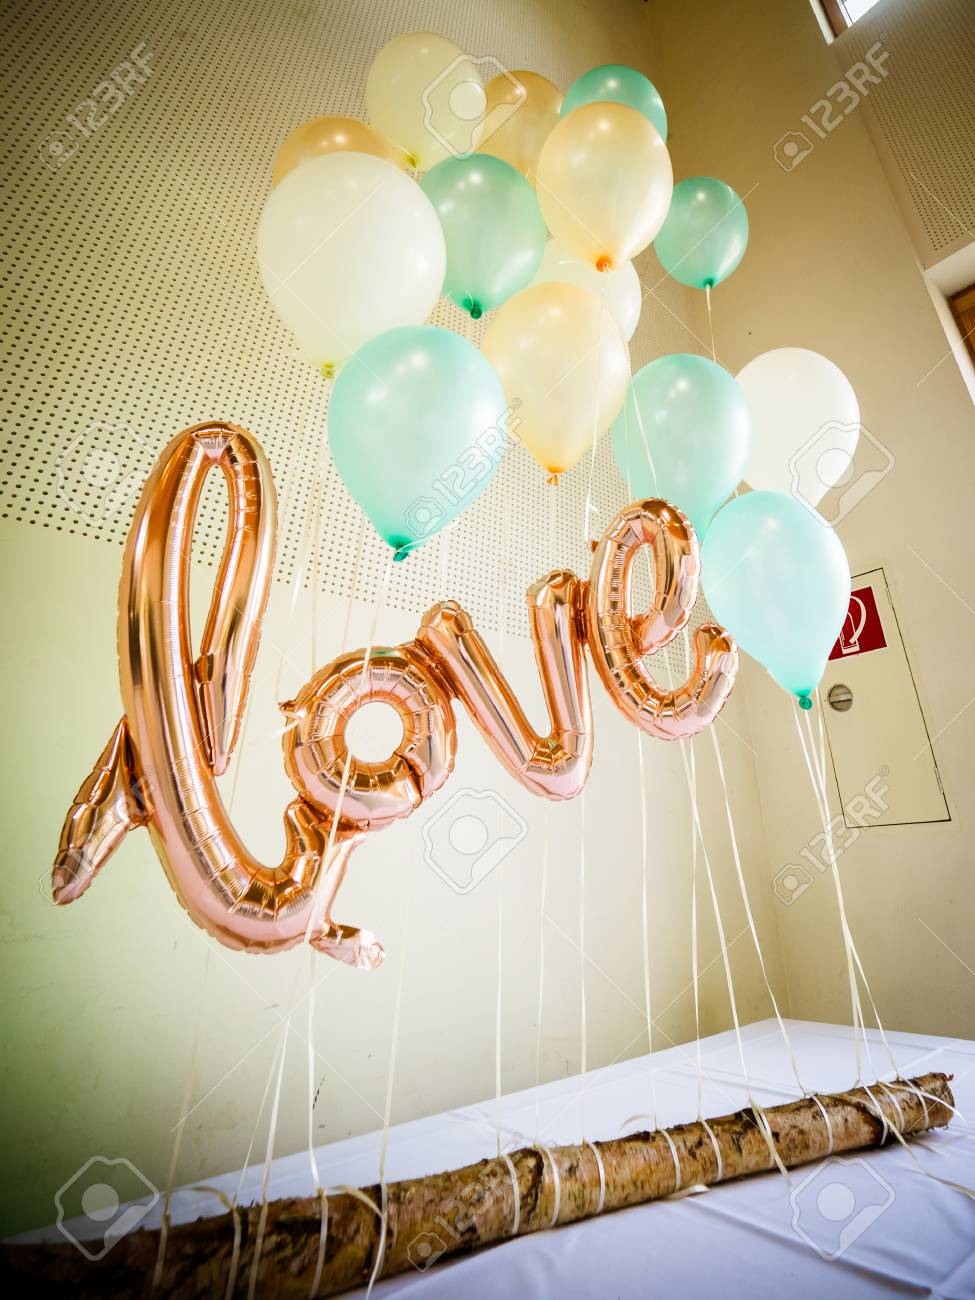 The Helium Balloon For The Wedding